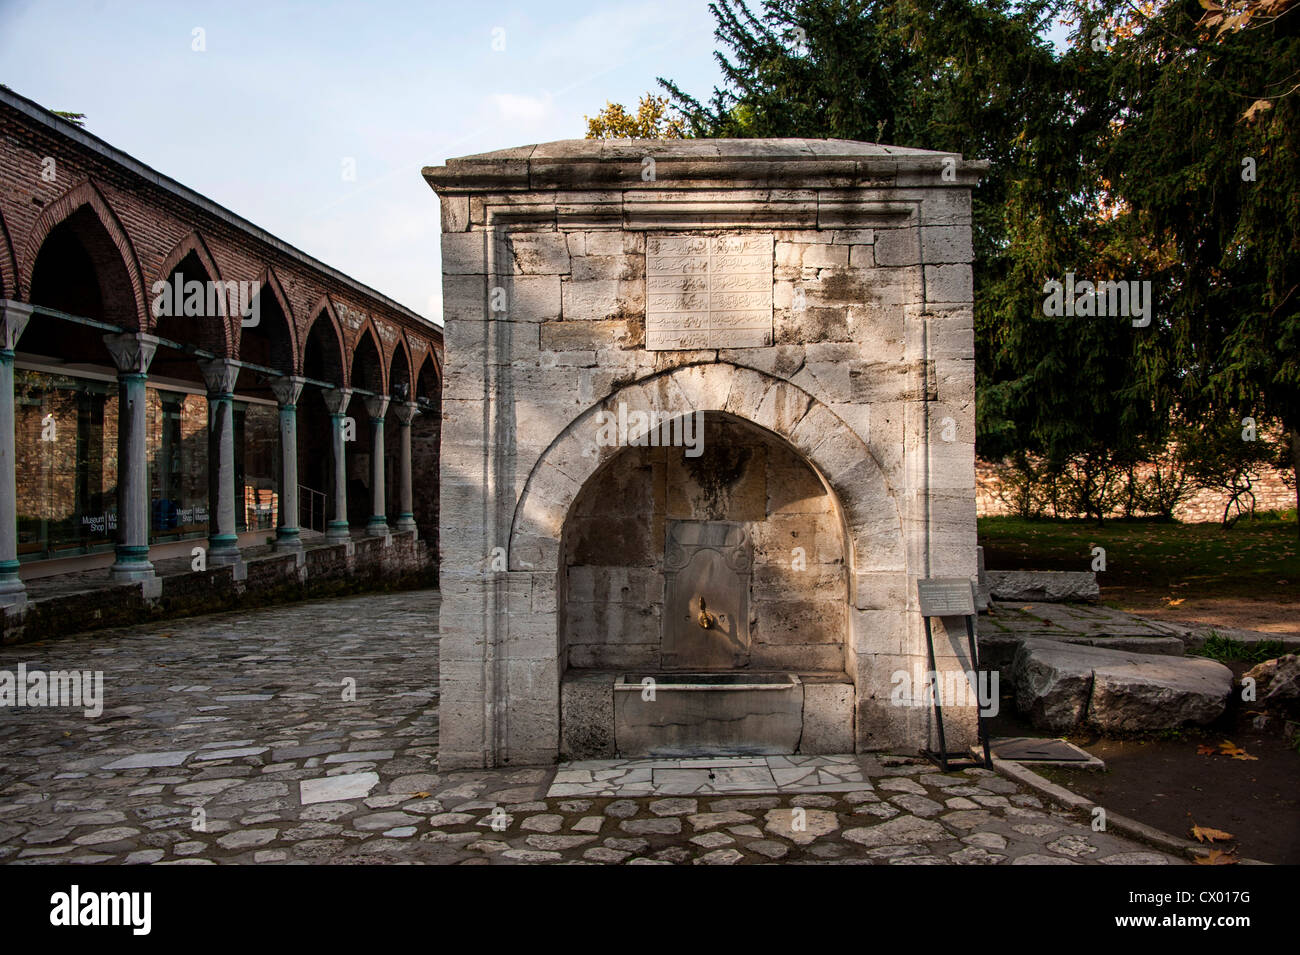 An old well inside the Topkapi Palace in Istanbul Turkey - Stock Image